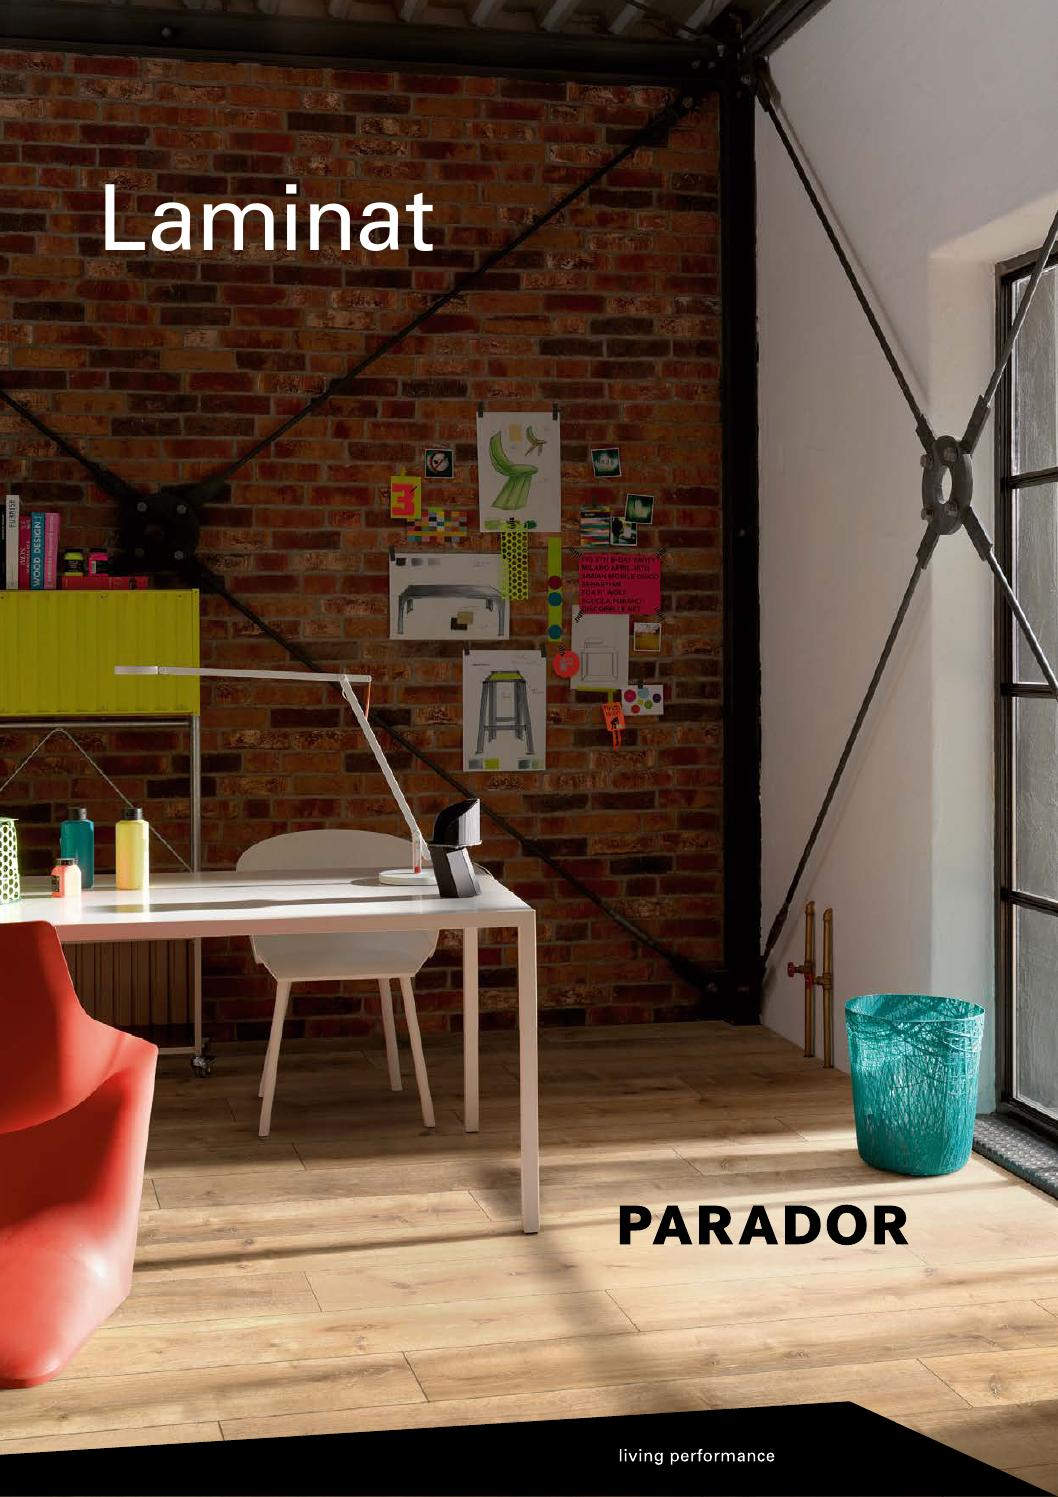 parador laminat by kaiser design issuu. Black Bedroom Furniture Sets. Home Design Ideas